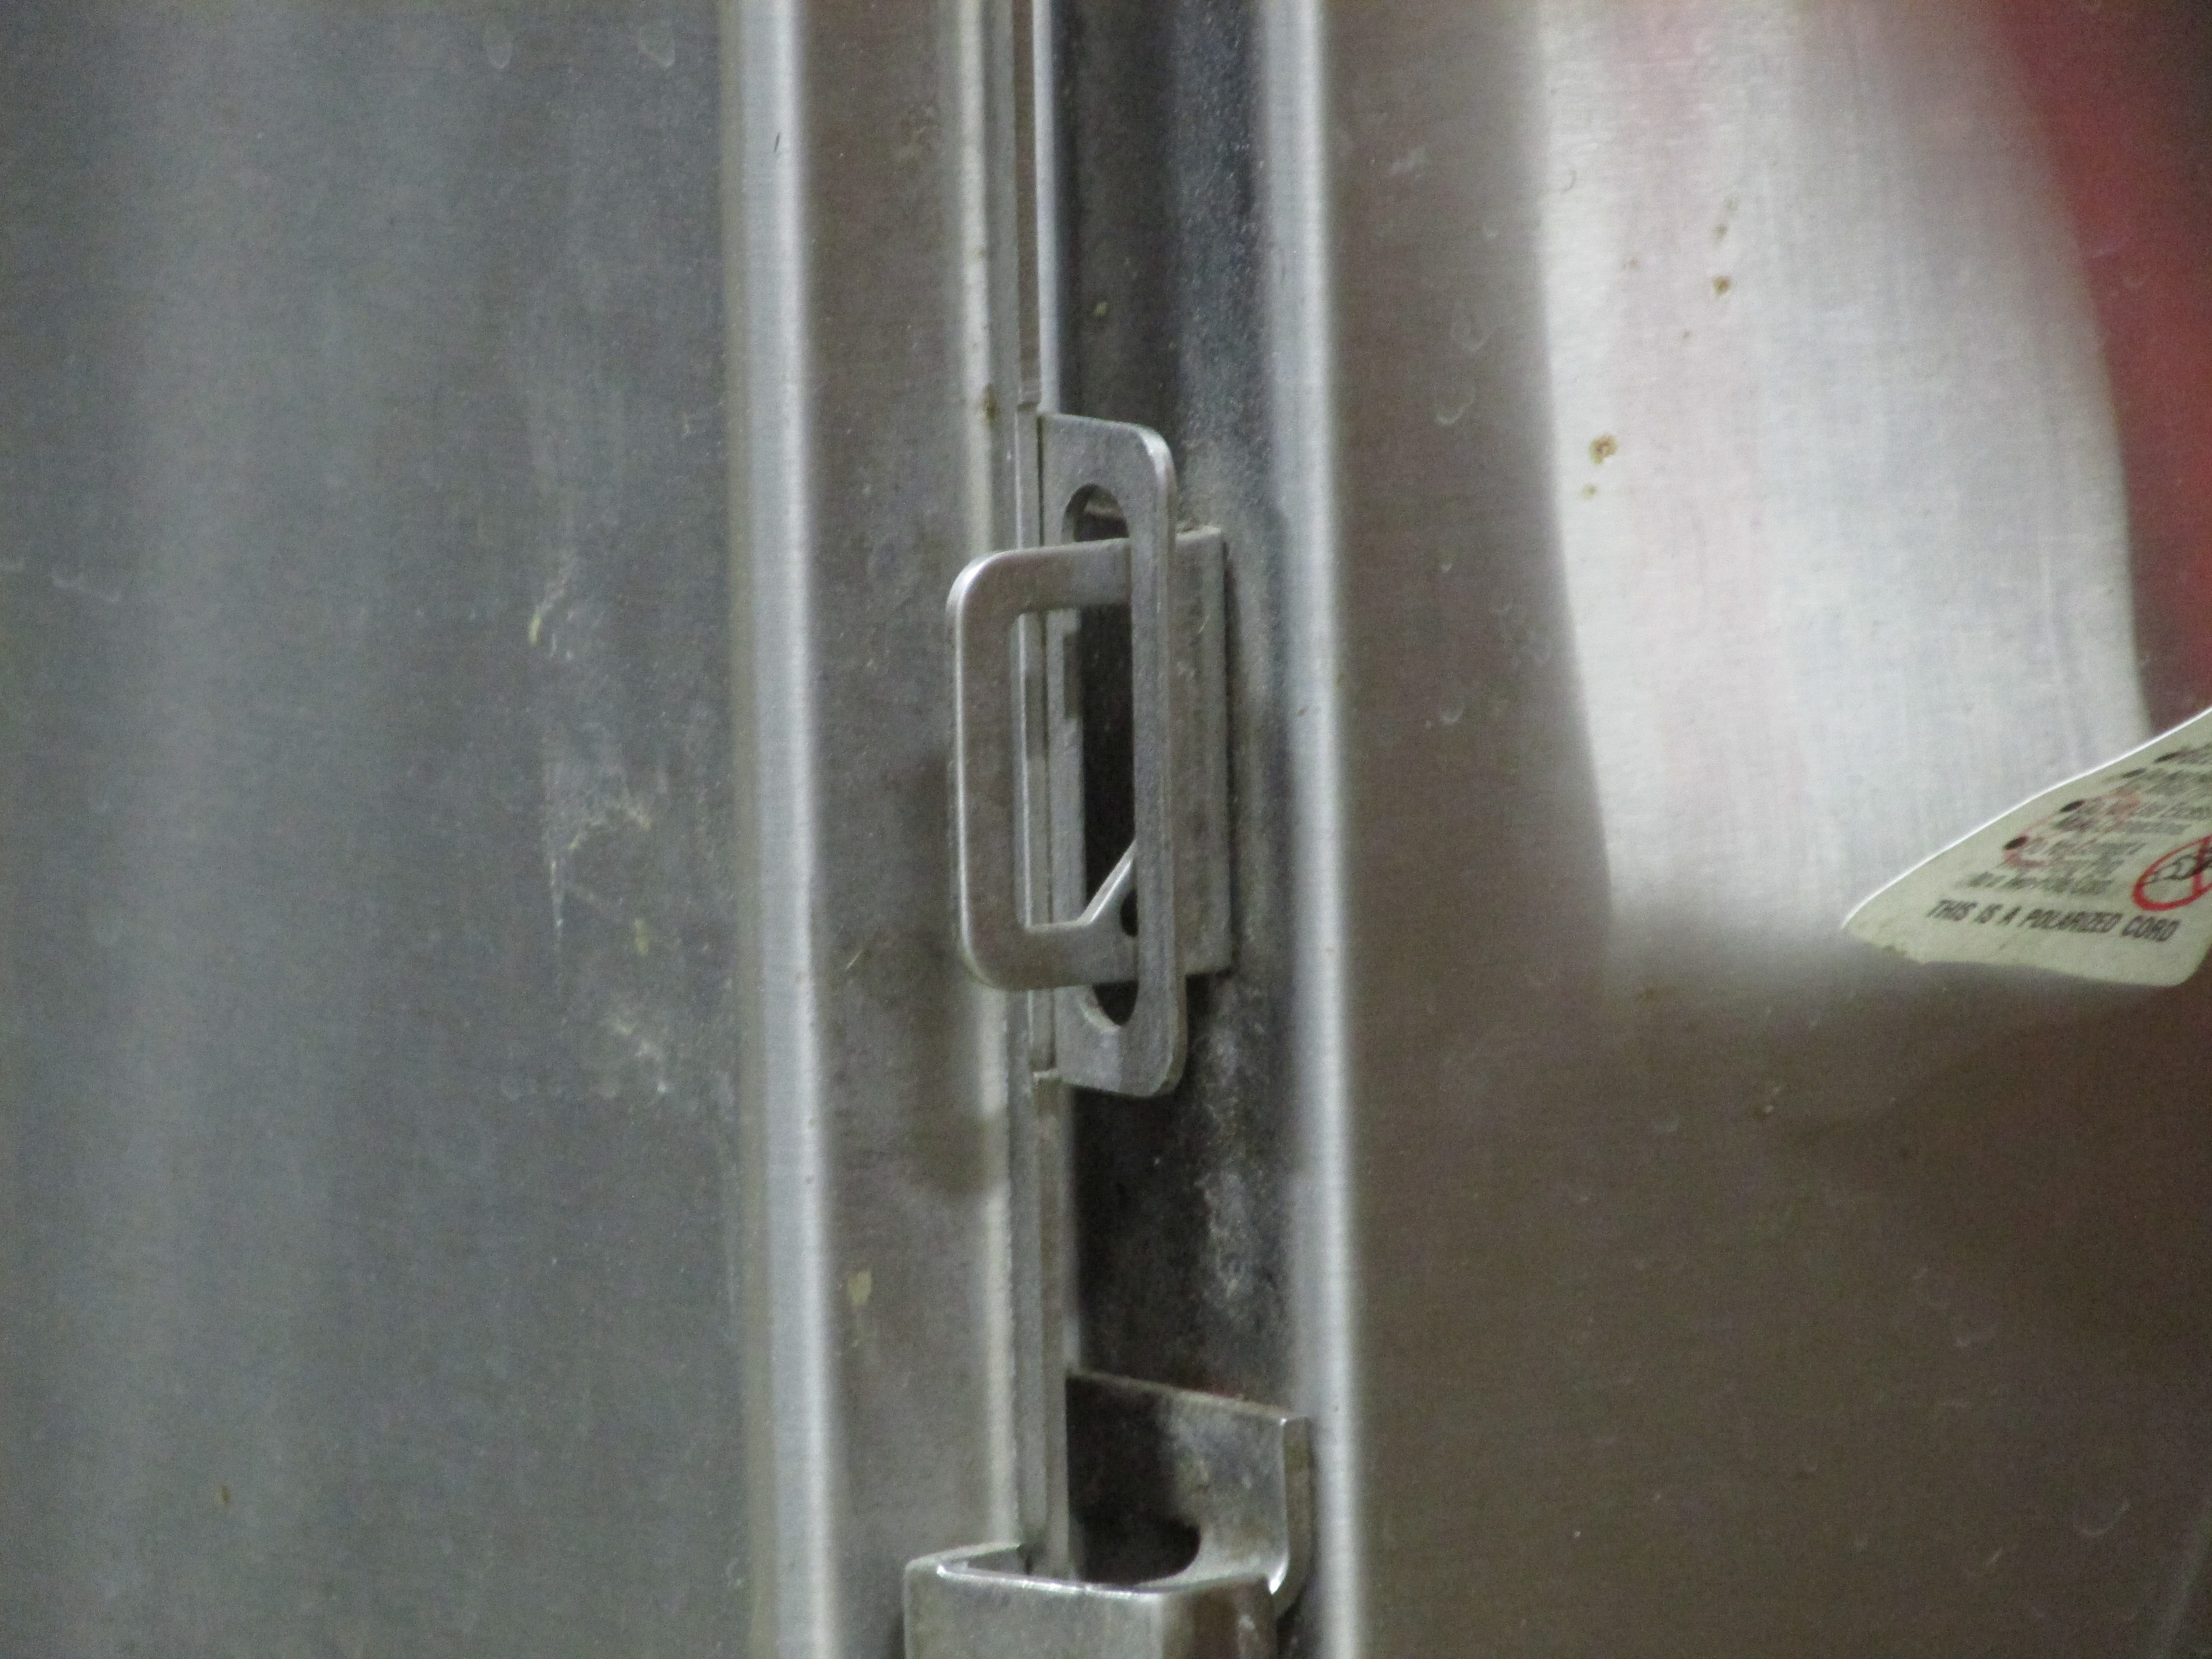 lockout clamp.jpg